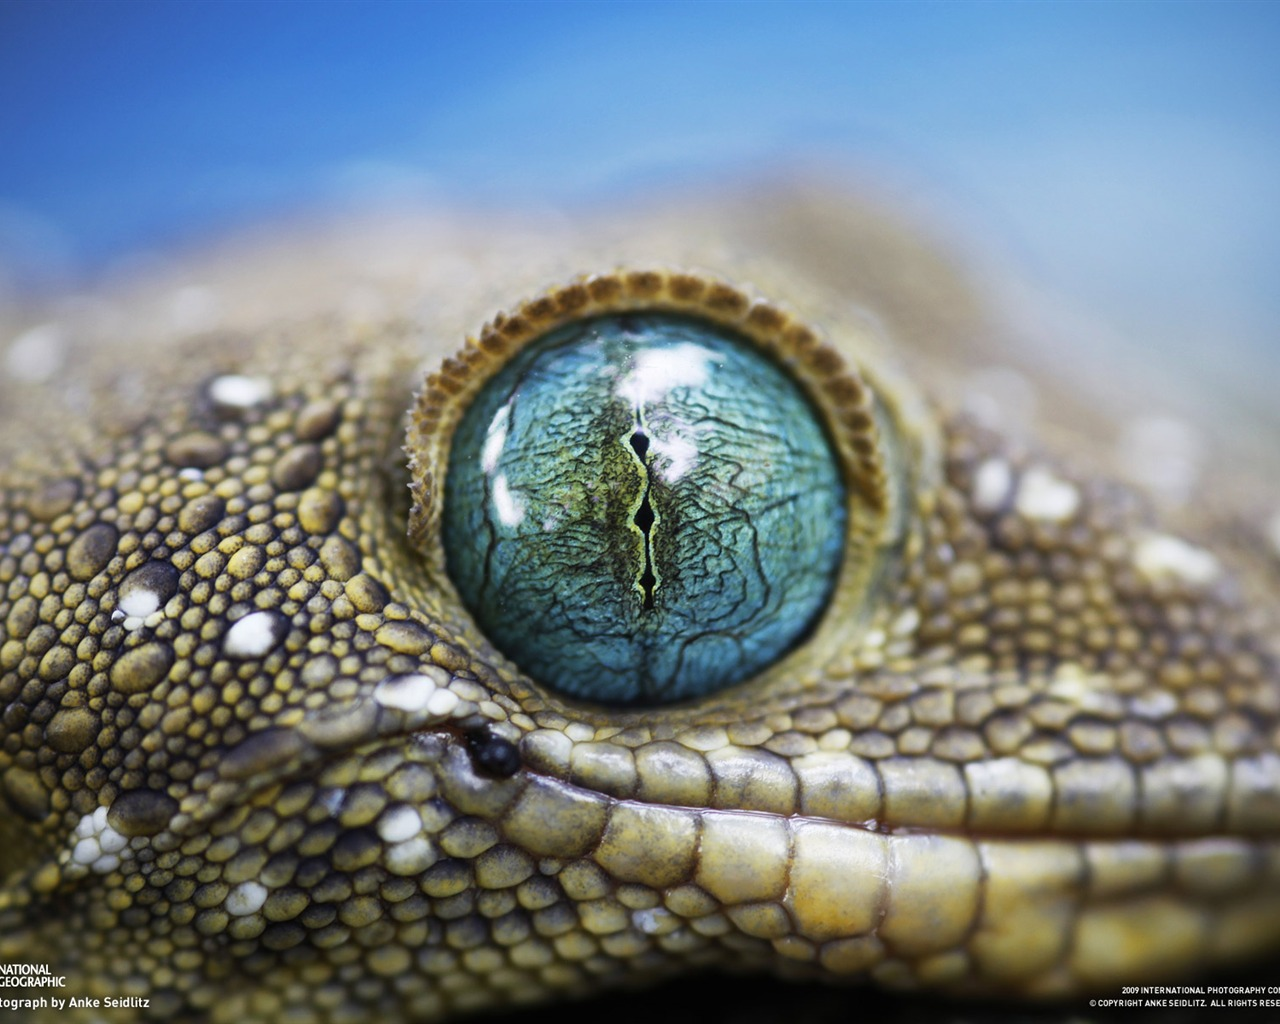 Wallpaper download national geographic - National Geographic Wallpapers Animal Articles 3 19 1280x1024